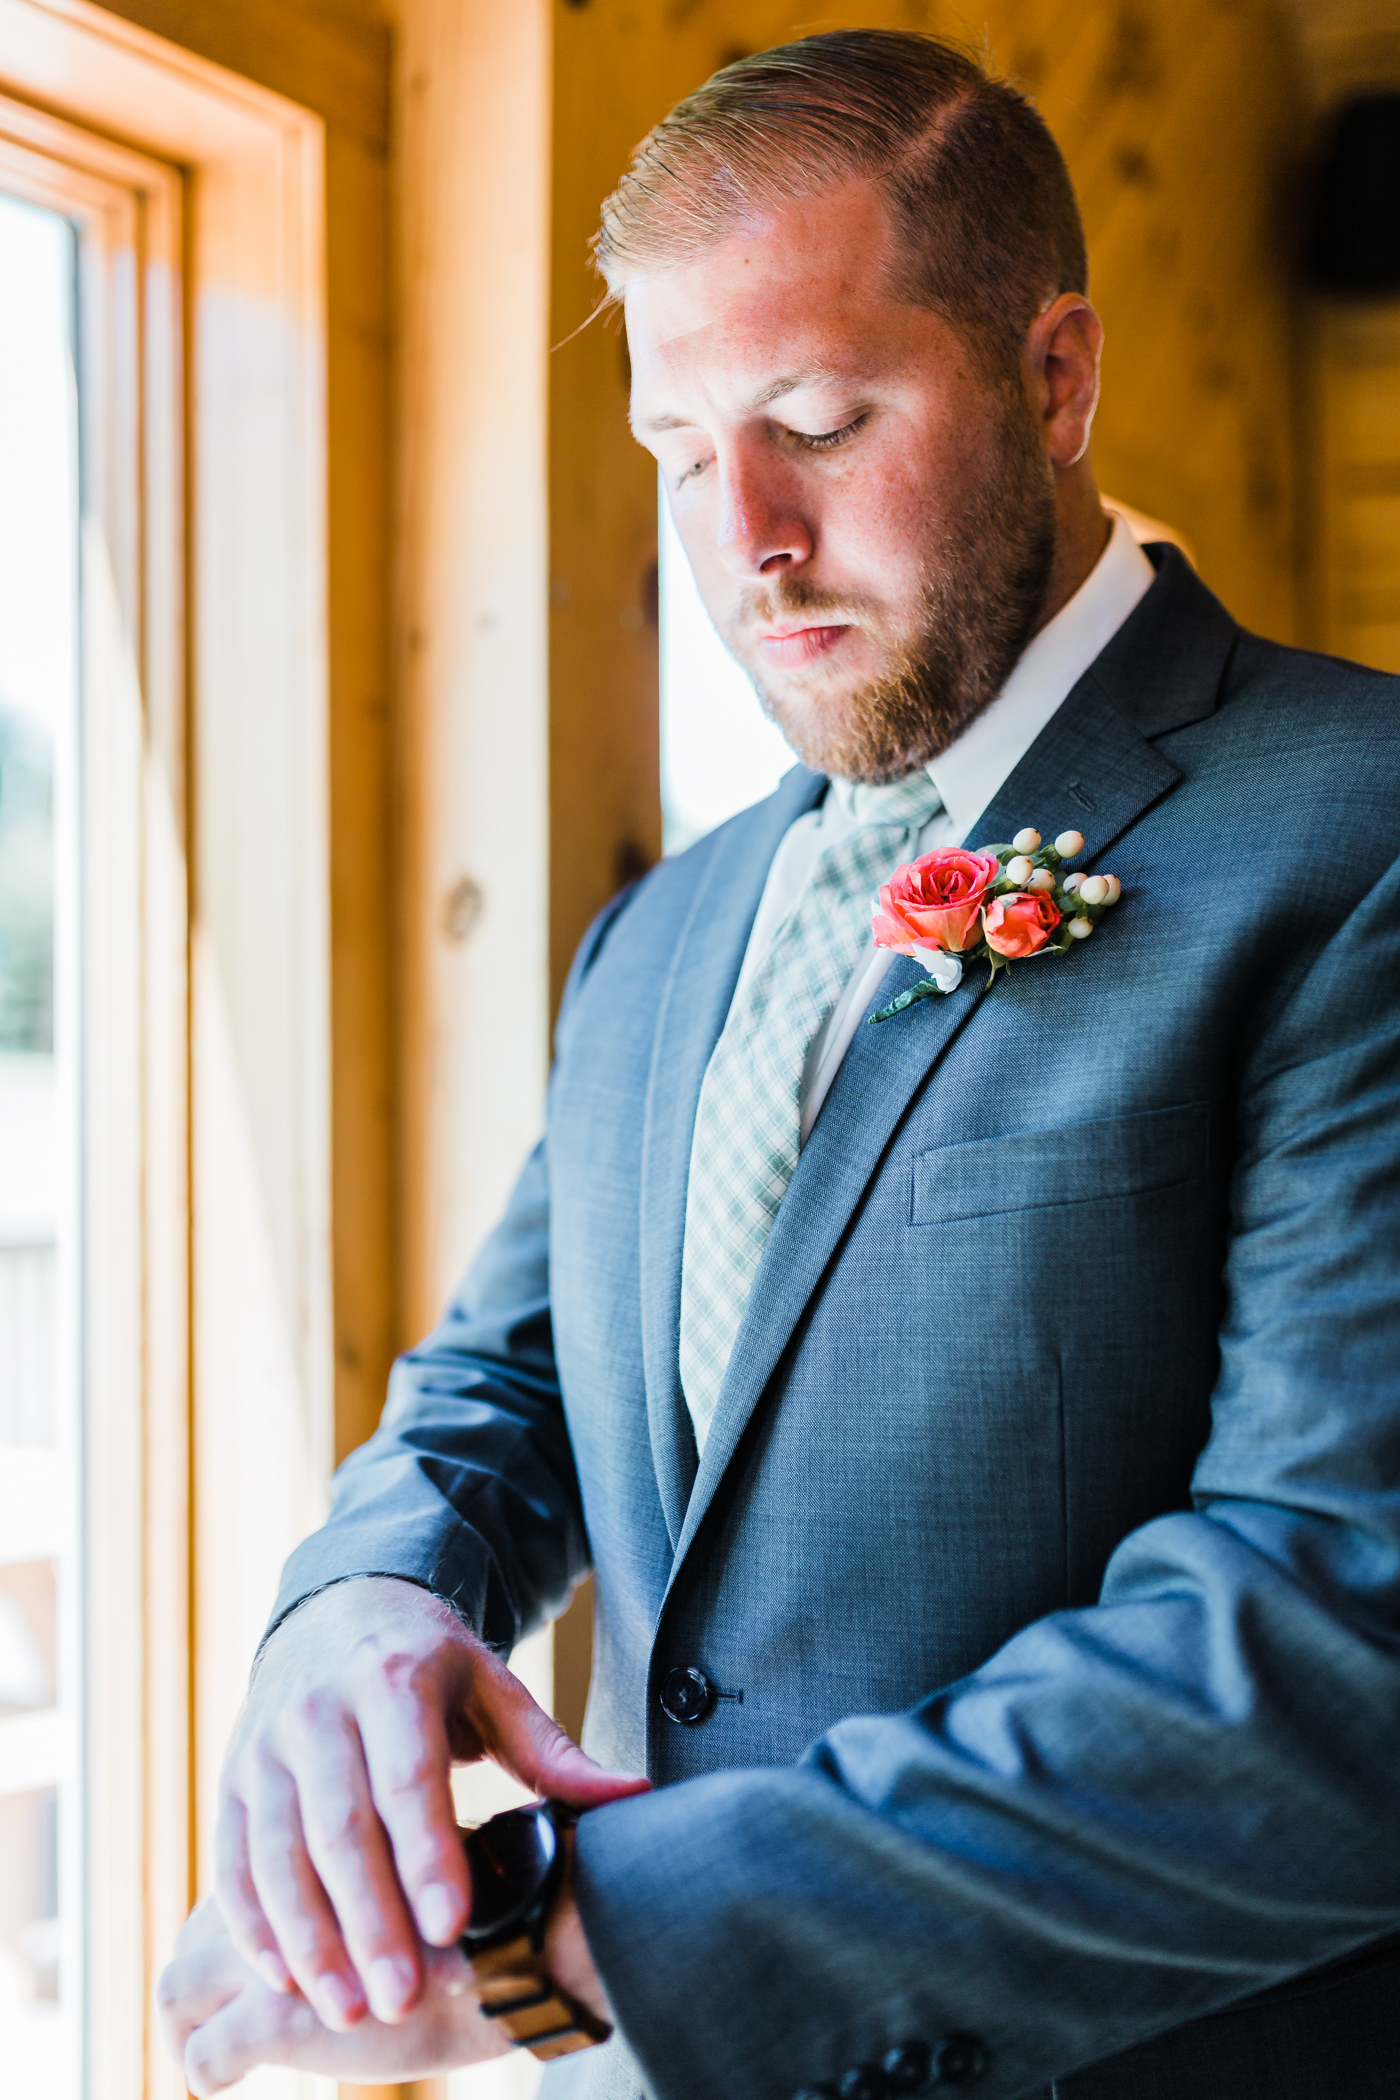 Groom getting ready photos - PA wedding photographer - MD wedding photographer and videographer - PA wedding venues